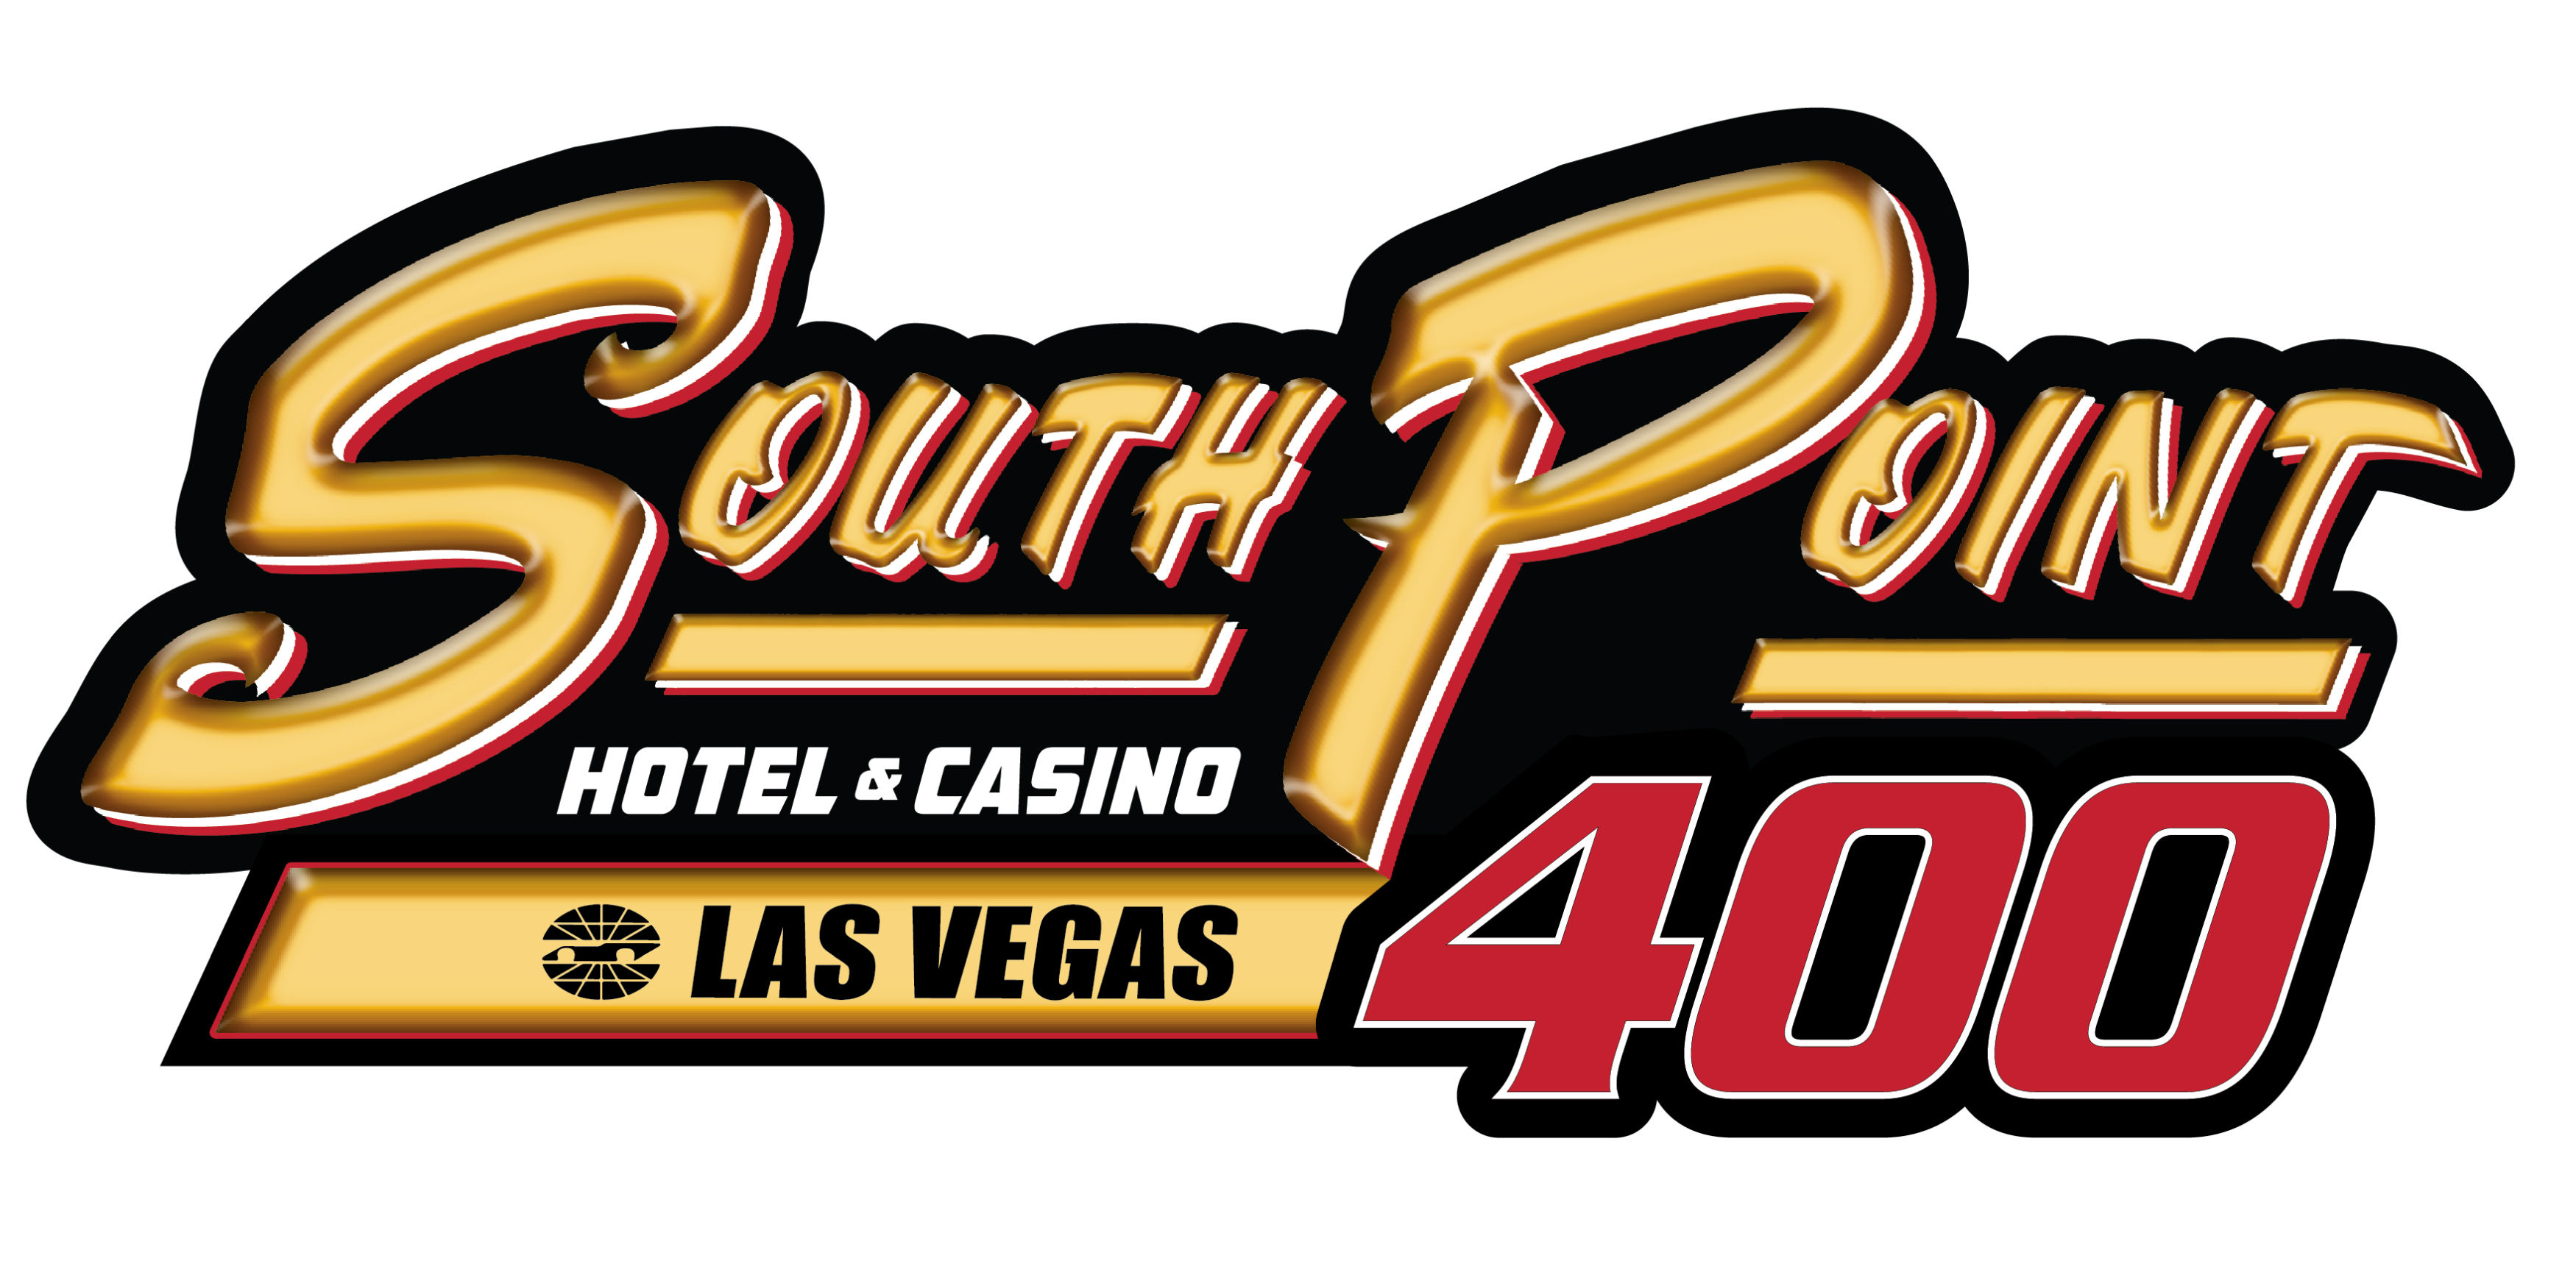 South Point Hotel Casino Spa Gears Up For September S Monster Energy Nascar Cup Series South Point 400 With Property Wide Experiences Catchfence